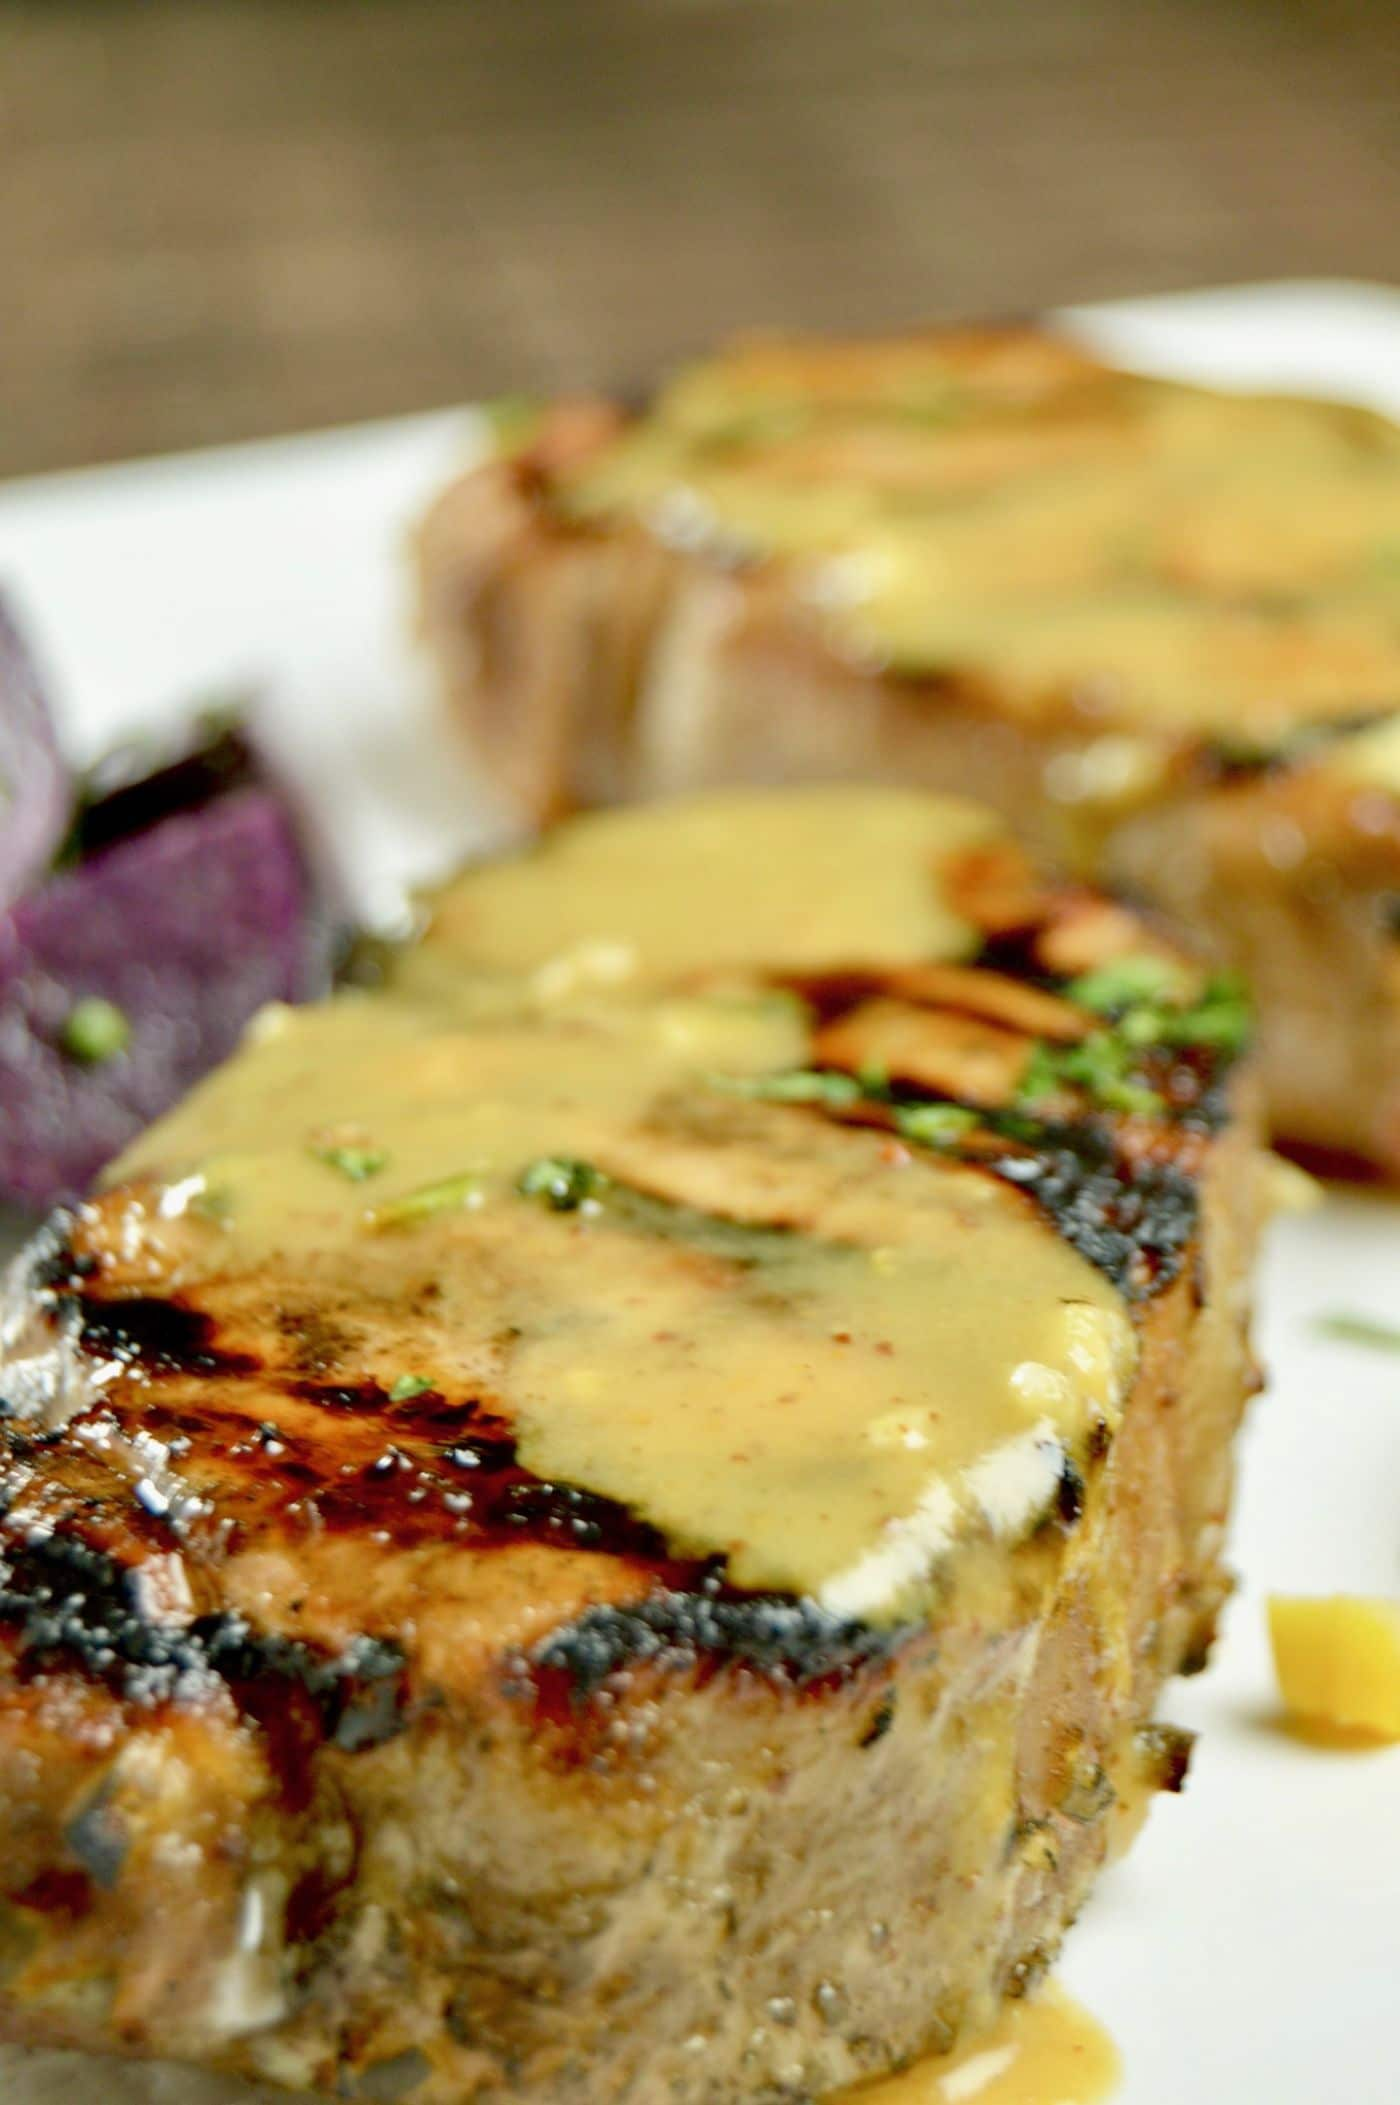 Juicy Grilled Honey Mustard Glazed Pork Chops is the no fail way to make succulent, tender chops. Marinate for 30 minutes, grill and have them on the table in about 15 minutes.